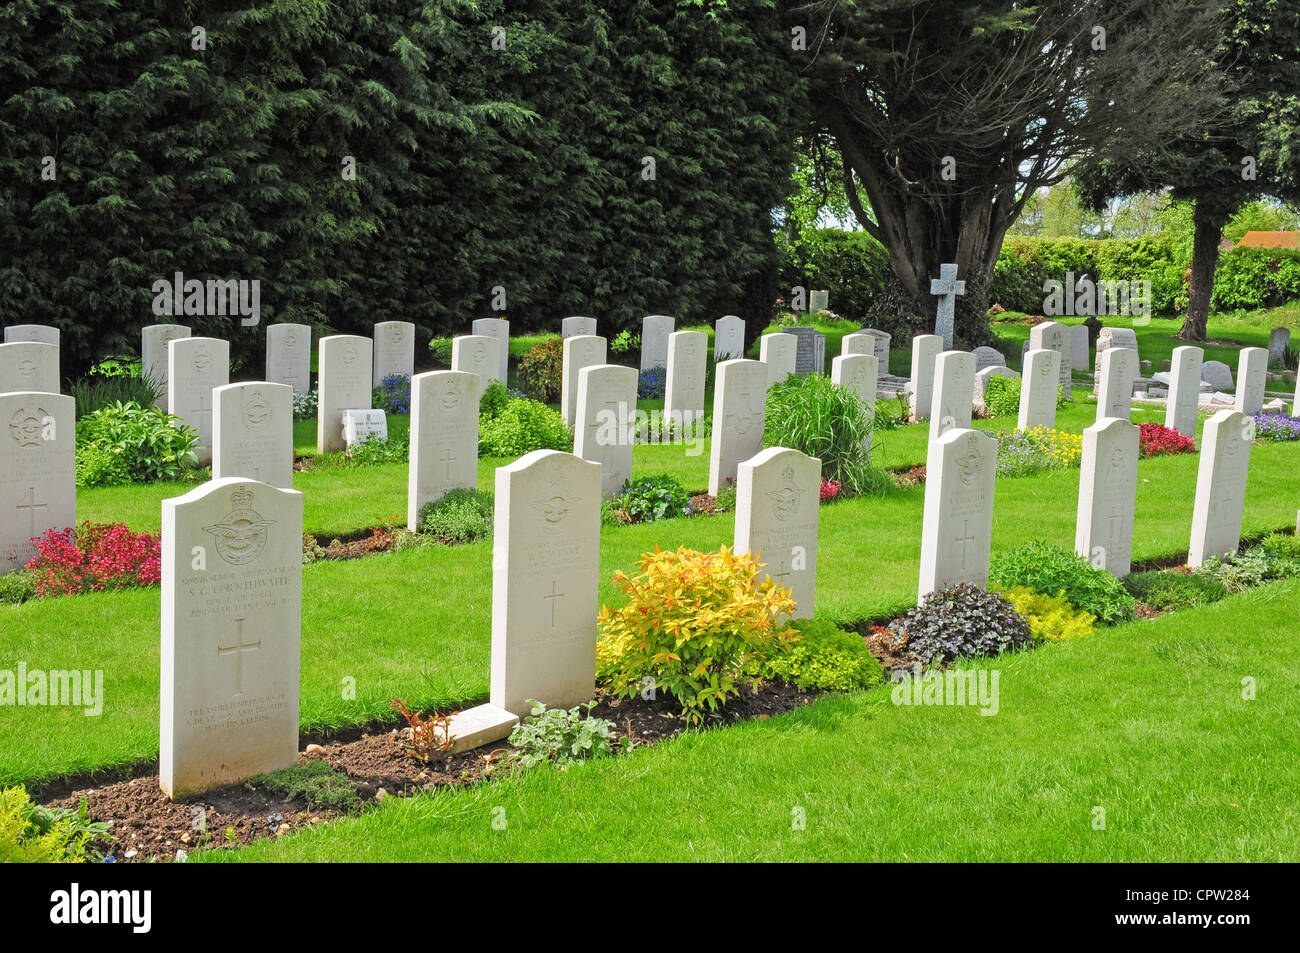 Graves and tombstones of pilots who died in World War Two. Tangmere. - Stock Image